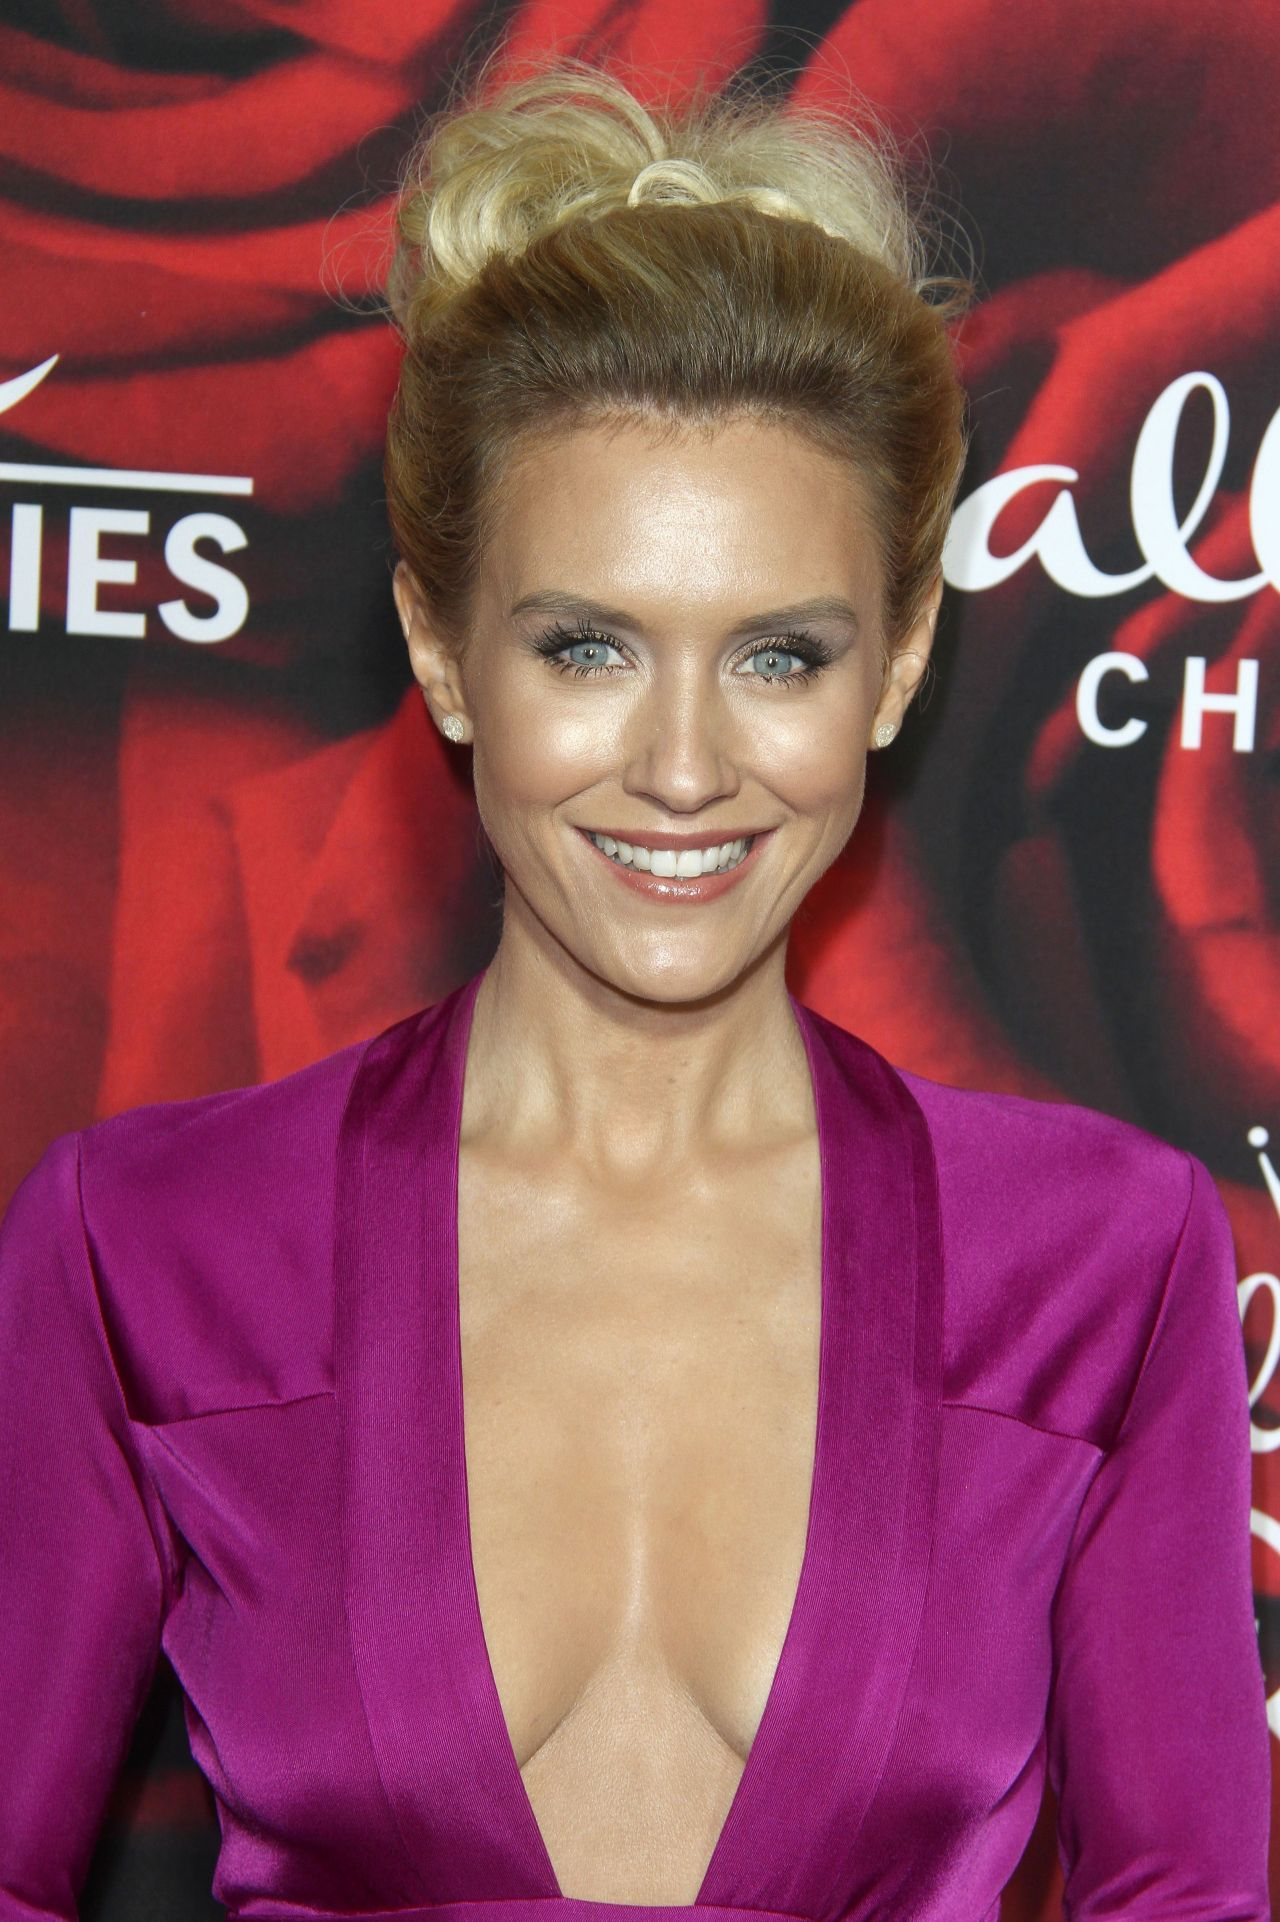 Cleavage Nicky Whelan nude (86 foto and video), Topless, Cleavage, Instagram, butt 2017